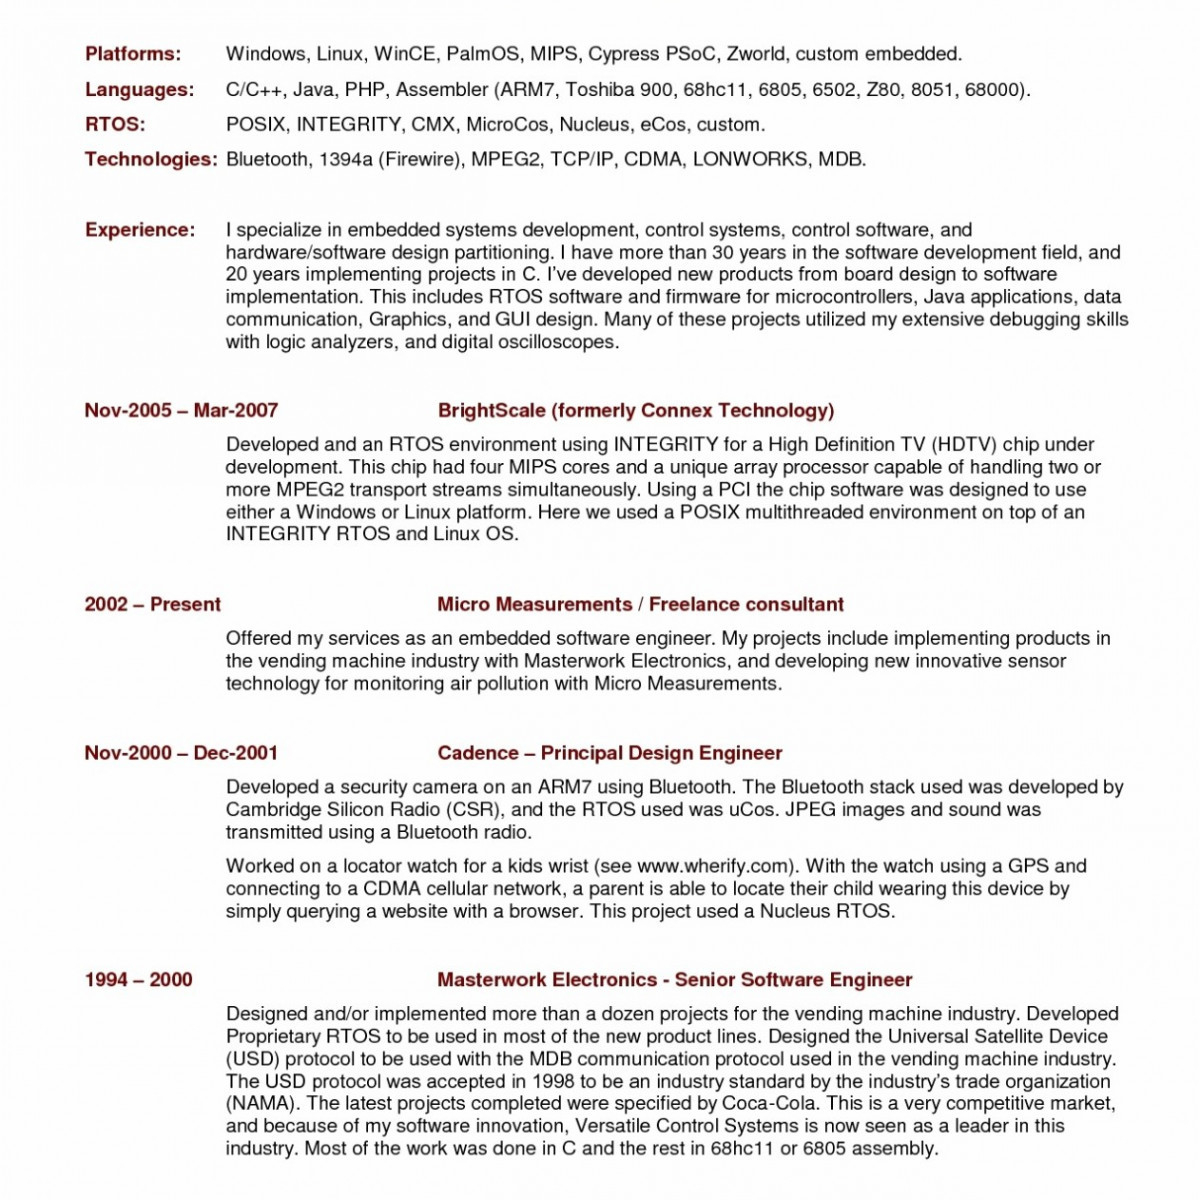 resume 2018 templates Collection-Resume It Dazzling It Resume Sample Pr Resume Template Elegant Dictionary Template 0d 6-t